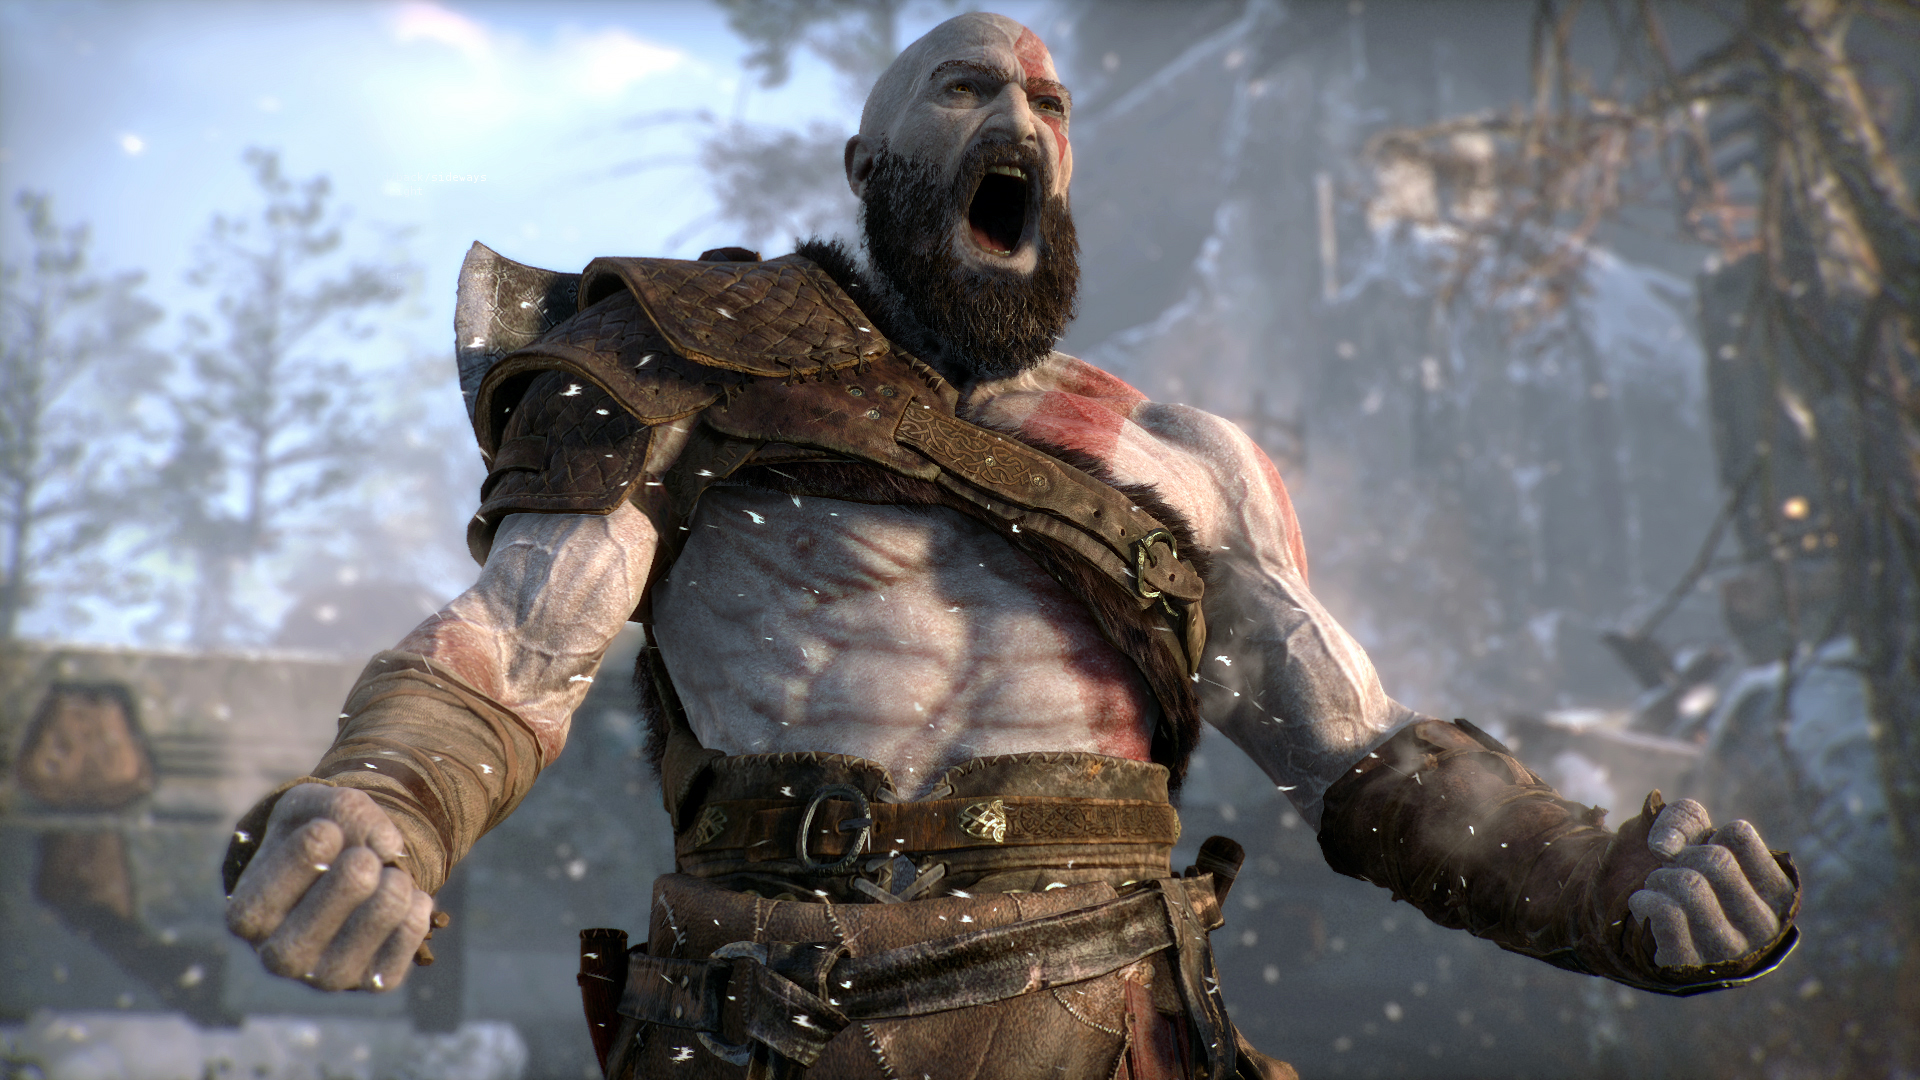 God of War is receiving nothing but rave reviews ahead of its April 20th release